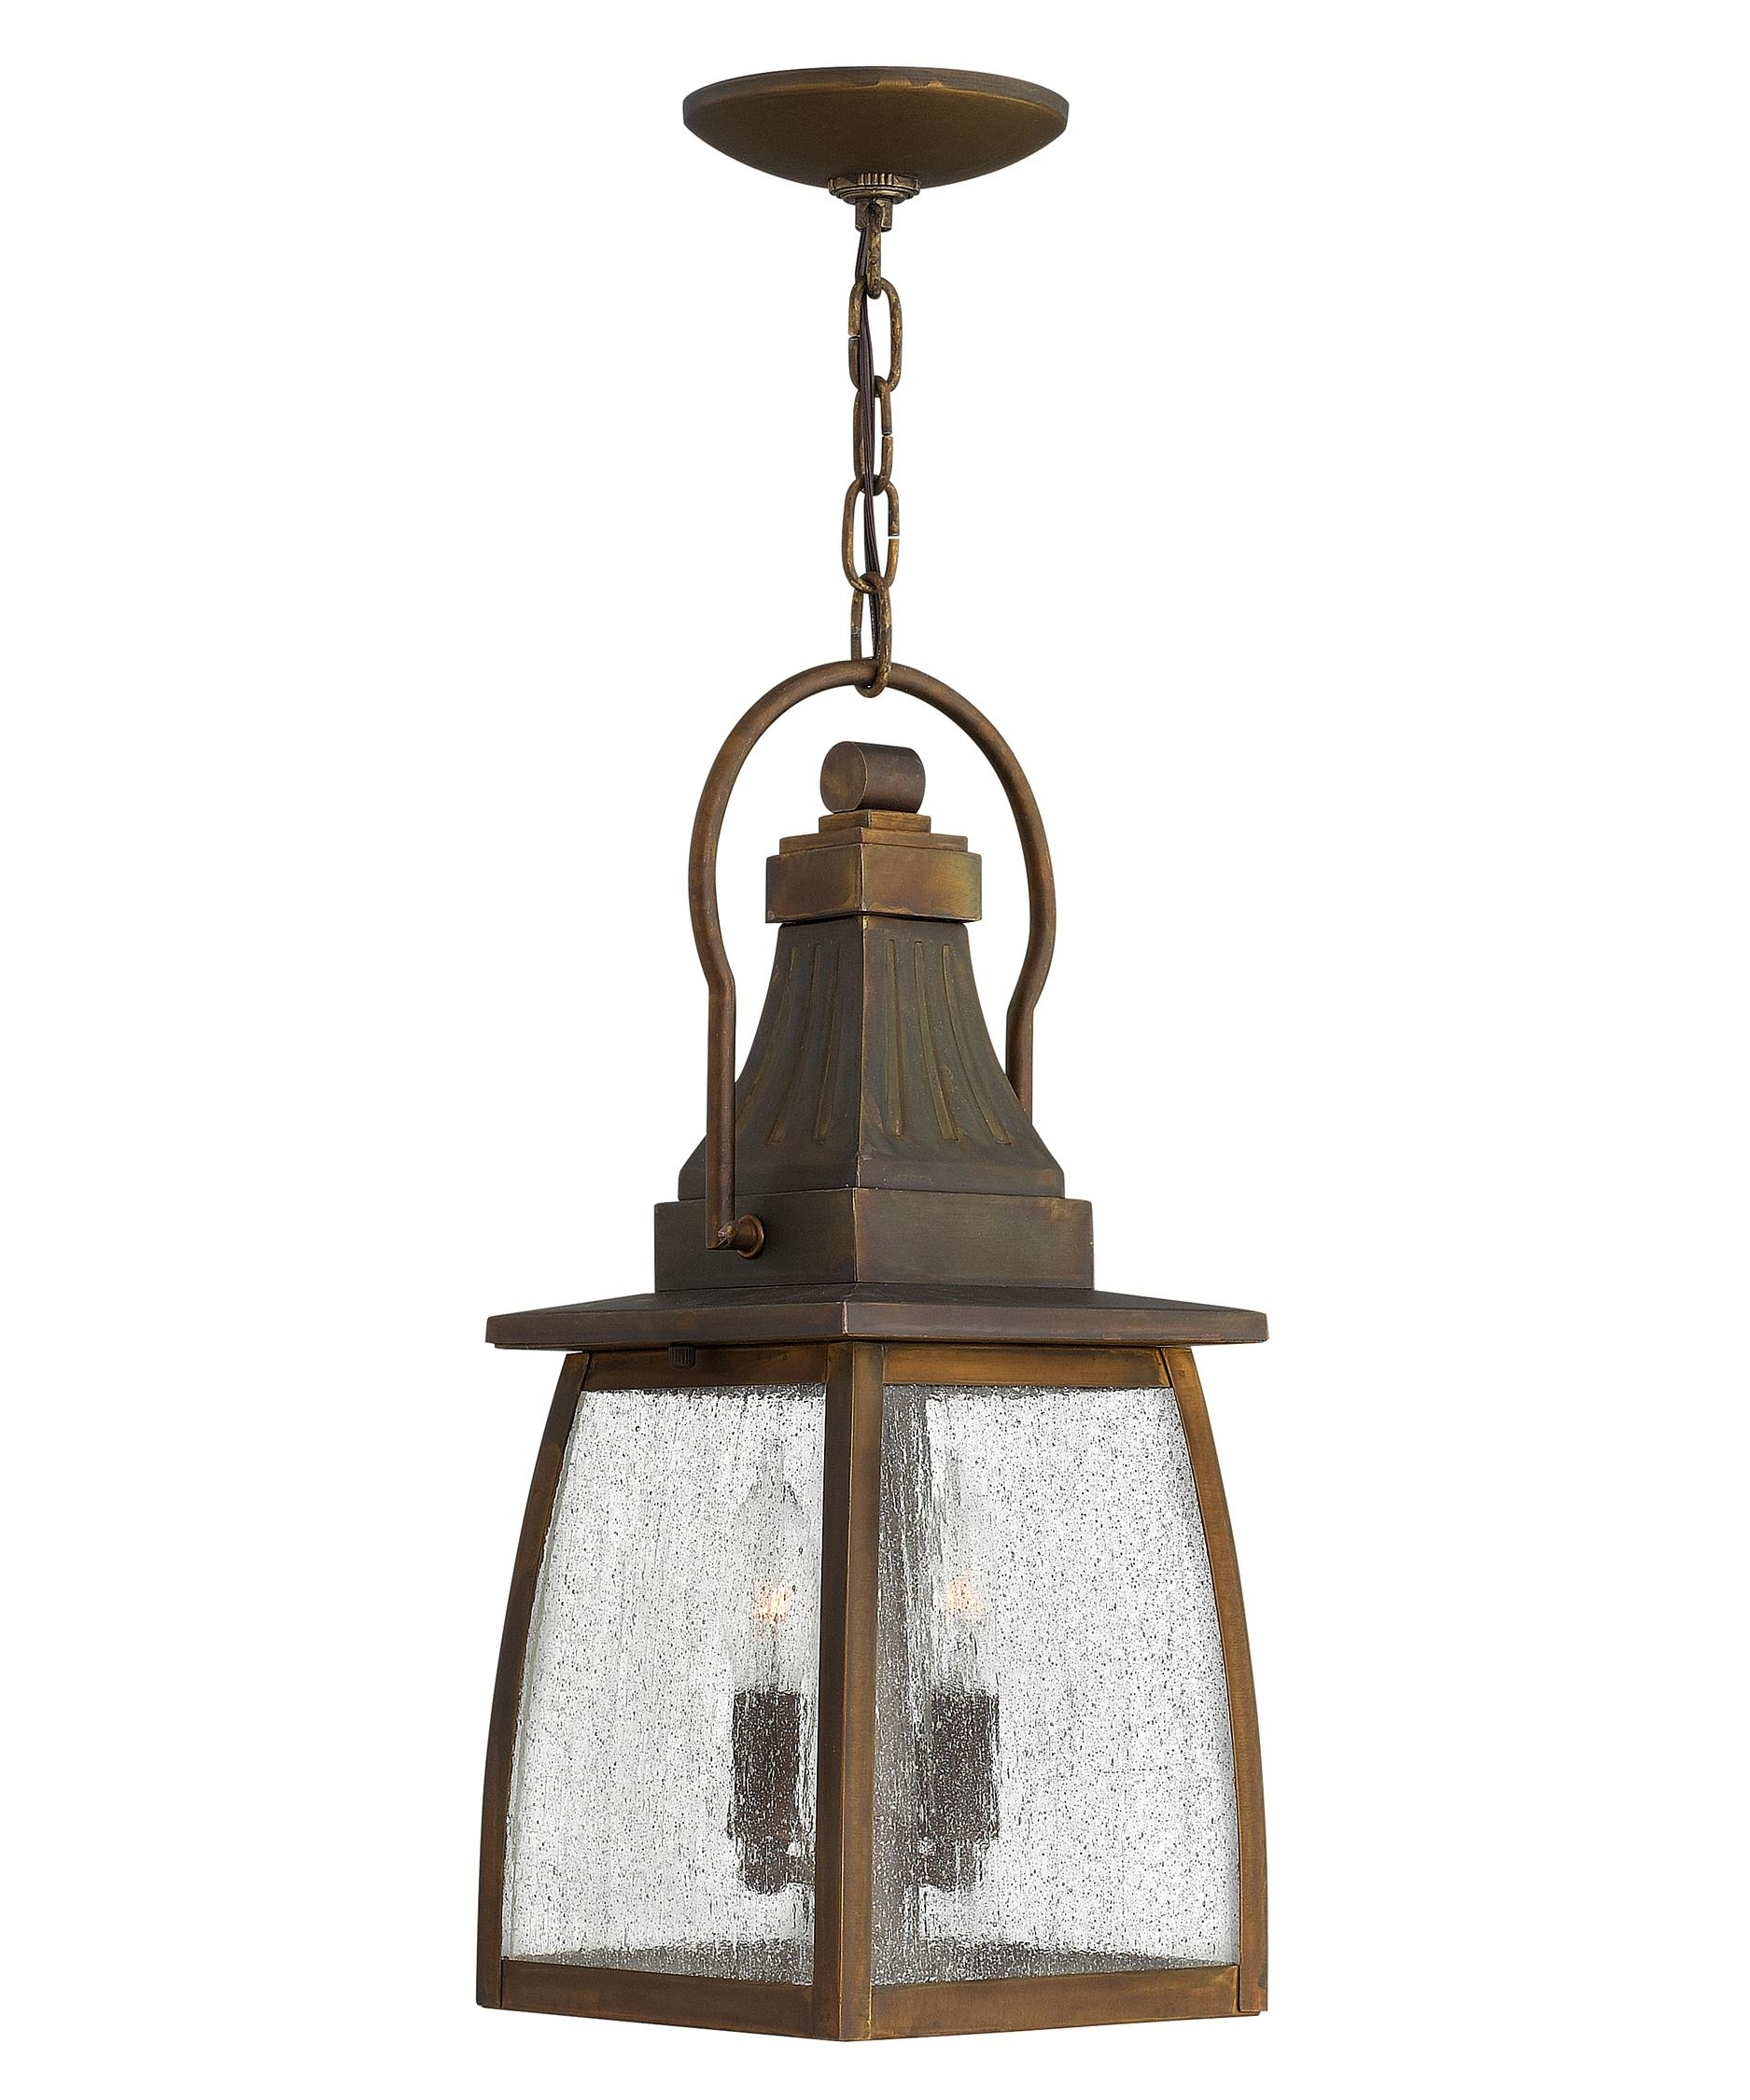 Hinkley Lighting 1202 Montauk 7 Inch Wide 2 Light Outdoor Hanging Intended For Popular Hinkley Lighting For Modern Garden (View 8 of 20)